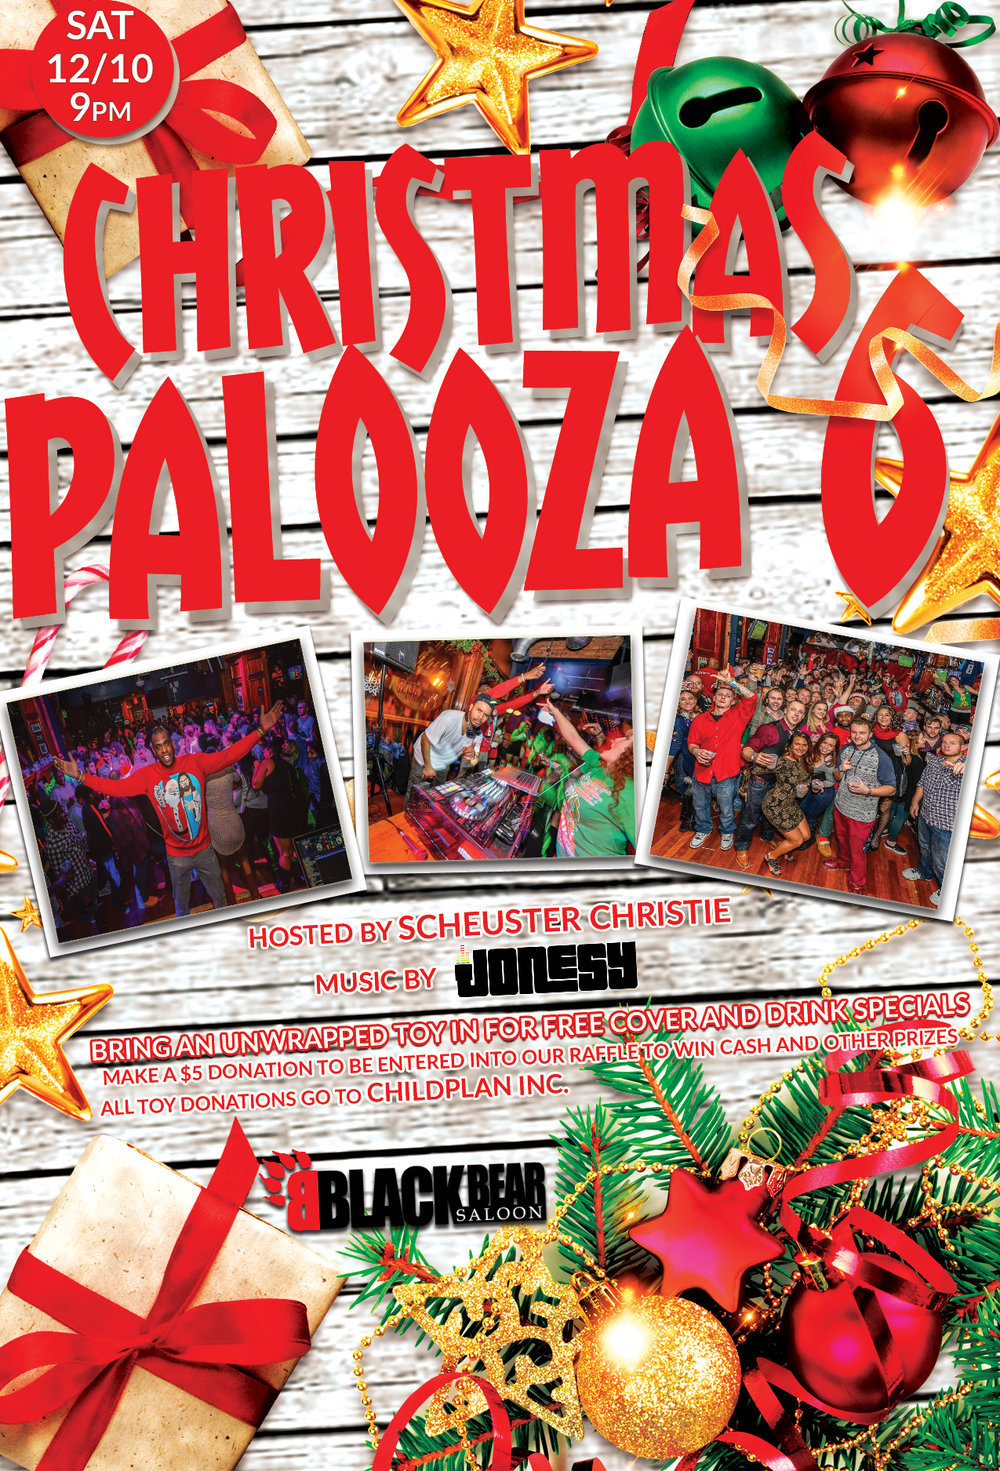 HARTFORD CT's BIGGEST PARTY, The CHRISTMASPALOOZA is back! For the sixth year, with the help and partnership of Black Bear Saloon, we aim to make this years party will be the best yet!     Please bring an unwrapped toy with you to the event and present it at the door. You will receive a wristband for drink specials and access to our exclusive top bar area.     Drink Specials:   $4 - ALL Draft Beers   $4 - ALL Wine   $4 - Mid Shelf Liquor Mixed Drinks   & an additional ChristmasPalooza Special Drink Menu     PLEASE NOTE: ONLY INDIVIDUALS THAT DONATE AN UNWRAPPED TOY WILL BE ALLOWED IN THE TOP BAR AND RECEIVE THE DRINK SPECIALS.     ALL TOYS WILL BE DONATED TO CHILDPLAN INC.  ChildPlan Inc.  50 Chapman Place, Room 2  East Hartford, CT 06108  www.childplan.org     Music will be spun by DJ Jonesy from 9:30 until close!   www.DJjonesy.com  IG: @thekidjonesy & @JonesyTeam  Photos will be taken by Connecticut Photographer/Artist Brittney Christie.  IG: dynasty_of_one  Make a $5 donation at the door to be entered into our raffle to win cash and other prizes.   PS: Feel free to dress in your wild holiday outfits. A family picture will be taken!  Social Media Postings: Please use the following hashtag in all posts.   #CP6   In conjunction to the ChristmasPalooza 6, we will also be celebrating the birthdays of the Matt Holmes (Dec 8th), Mark Wigglesworth (Dec 10th), and DJ Jonesy (Dec 12th)!!!!   Hope you can all join us. Happy holidays!